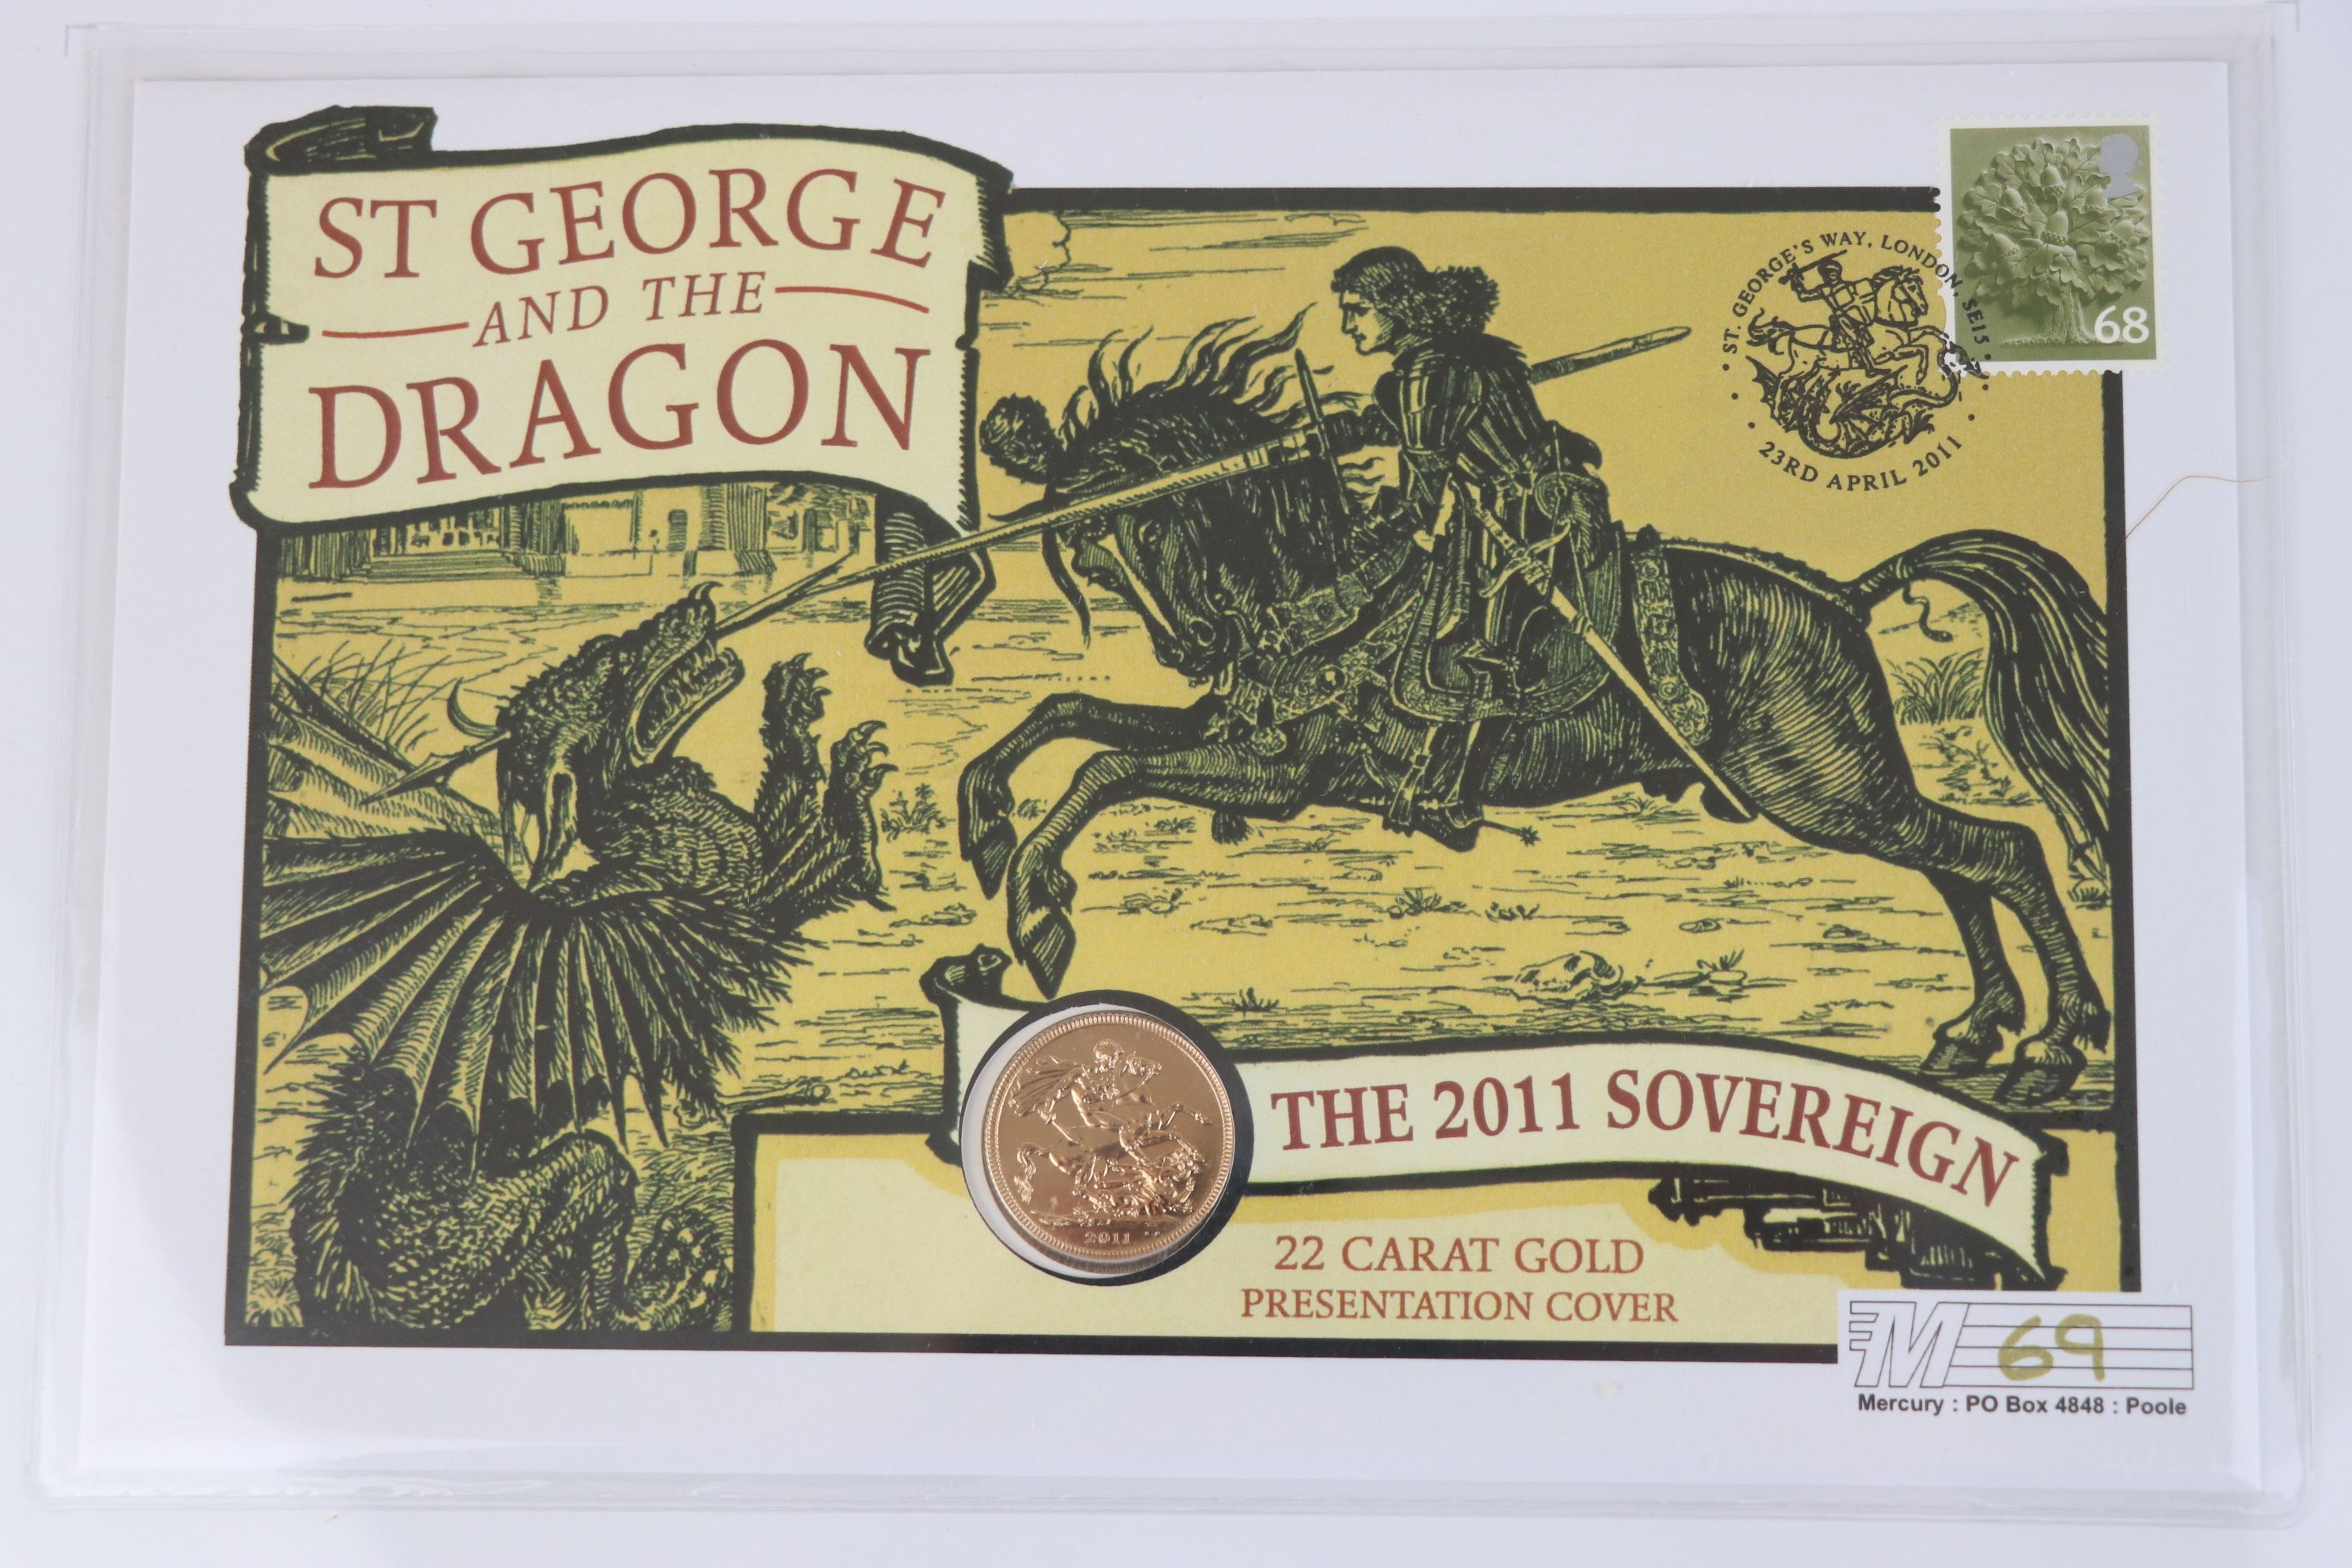 A Westminster Mint limited edition 2011 gold sovereign St. George & The Dragon presentation cover, - Image 3 of 7